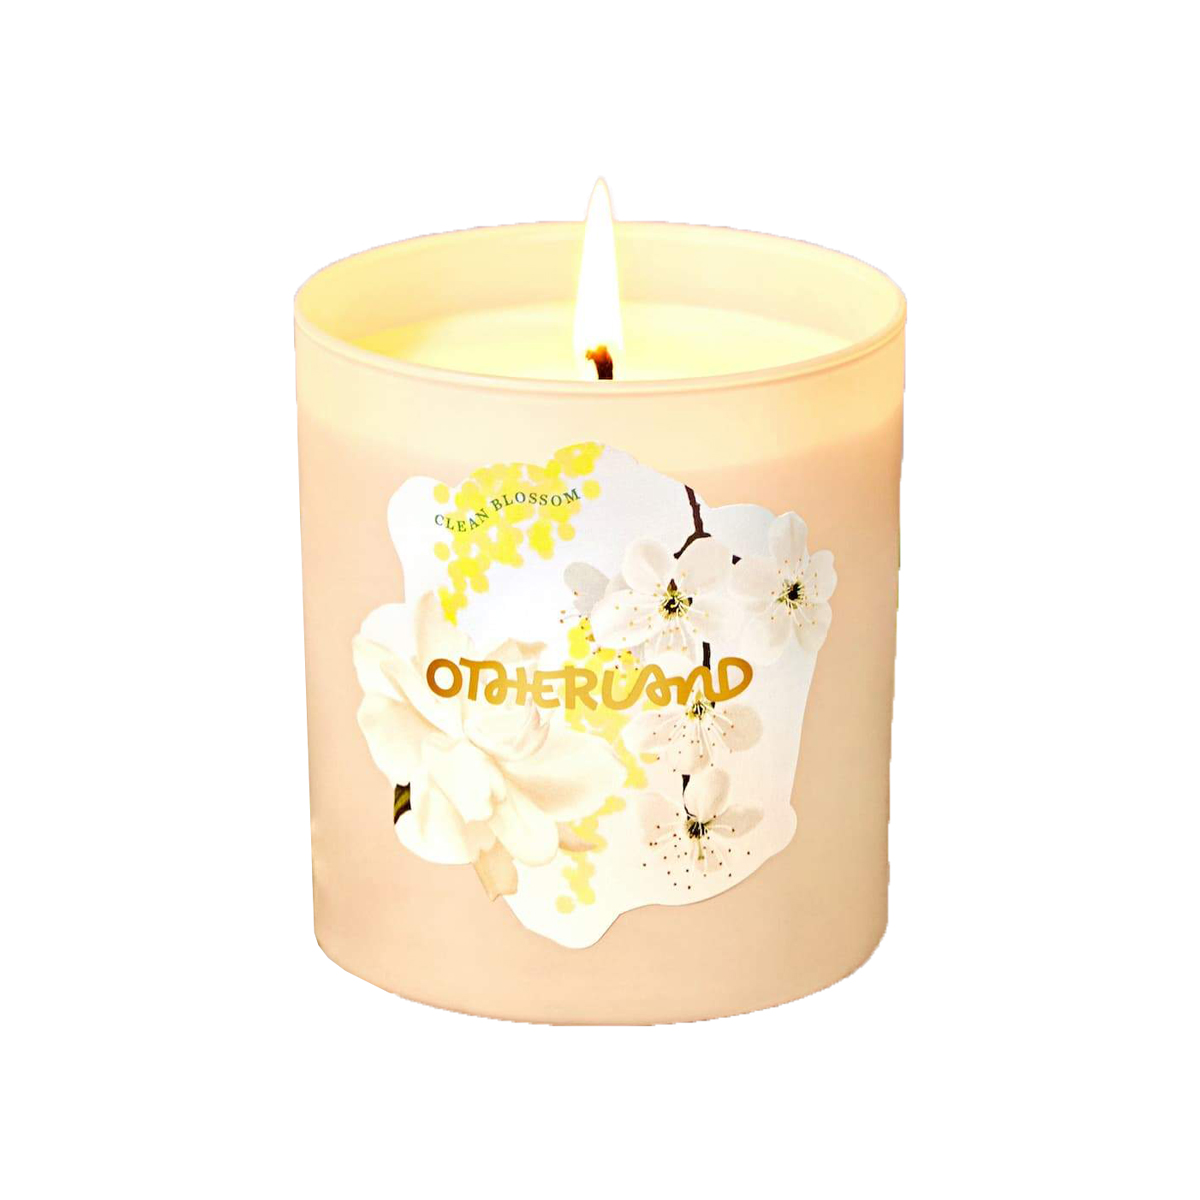 Otherland Clean Blossom candle